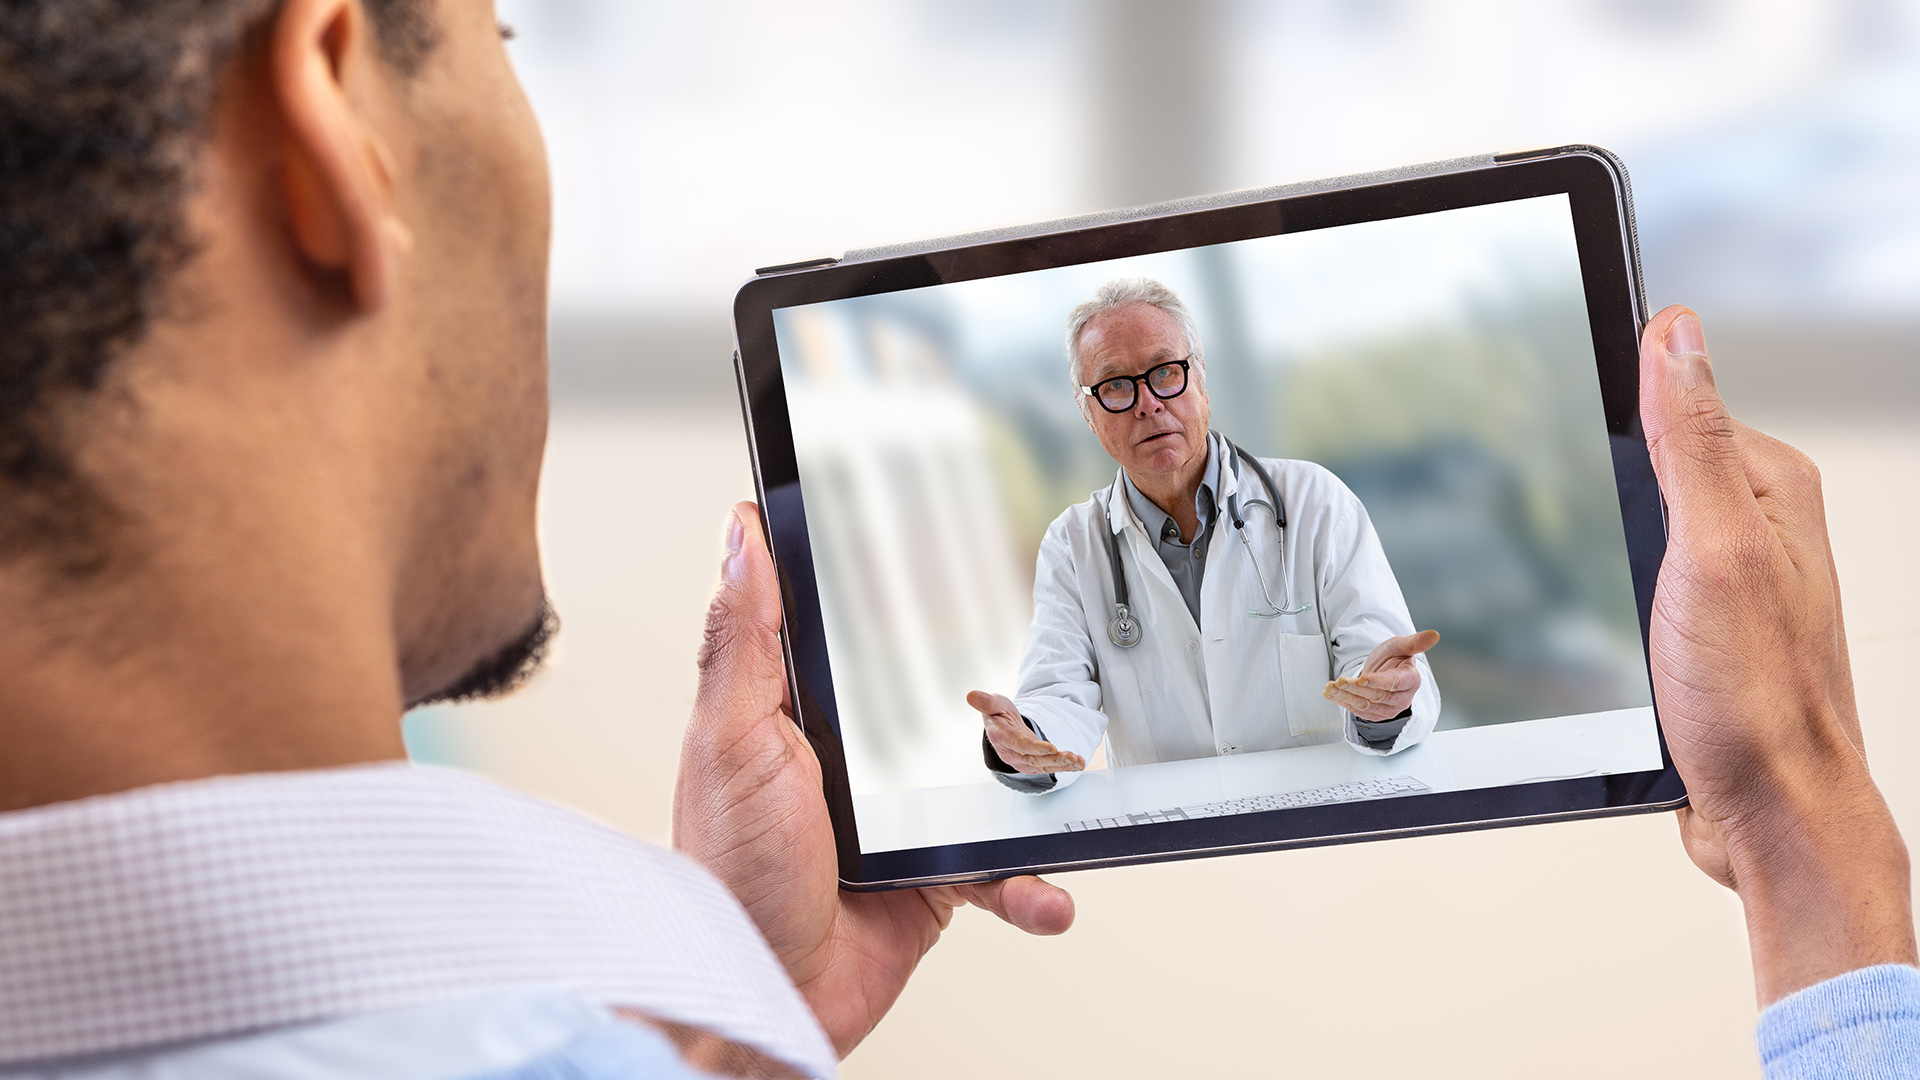 marketing strategies for telehealth companies are shared